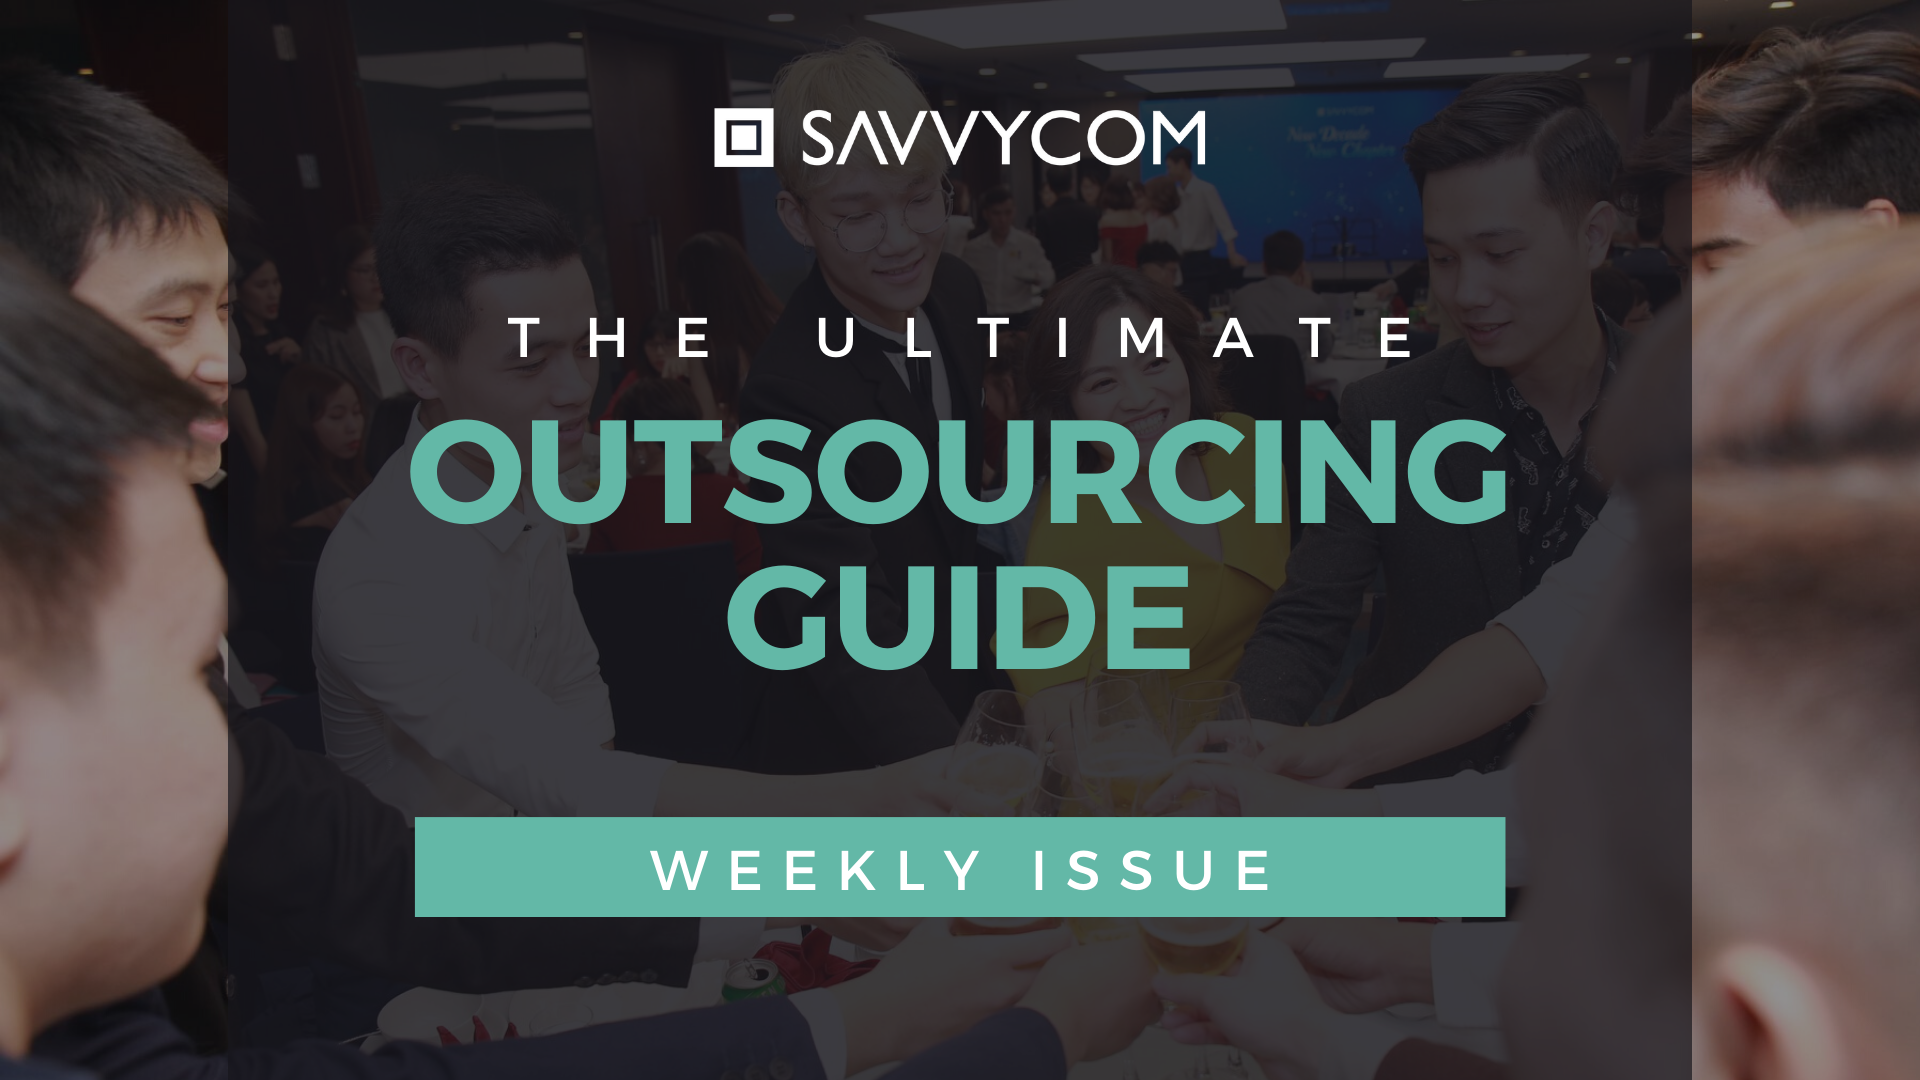 Outsourcing-guide-savvycom